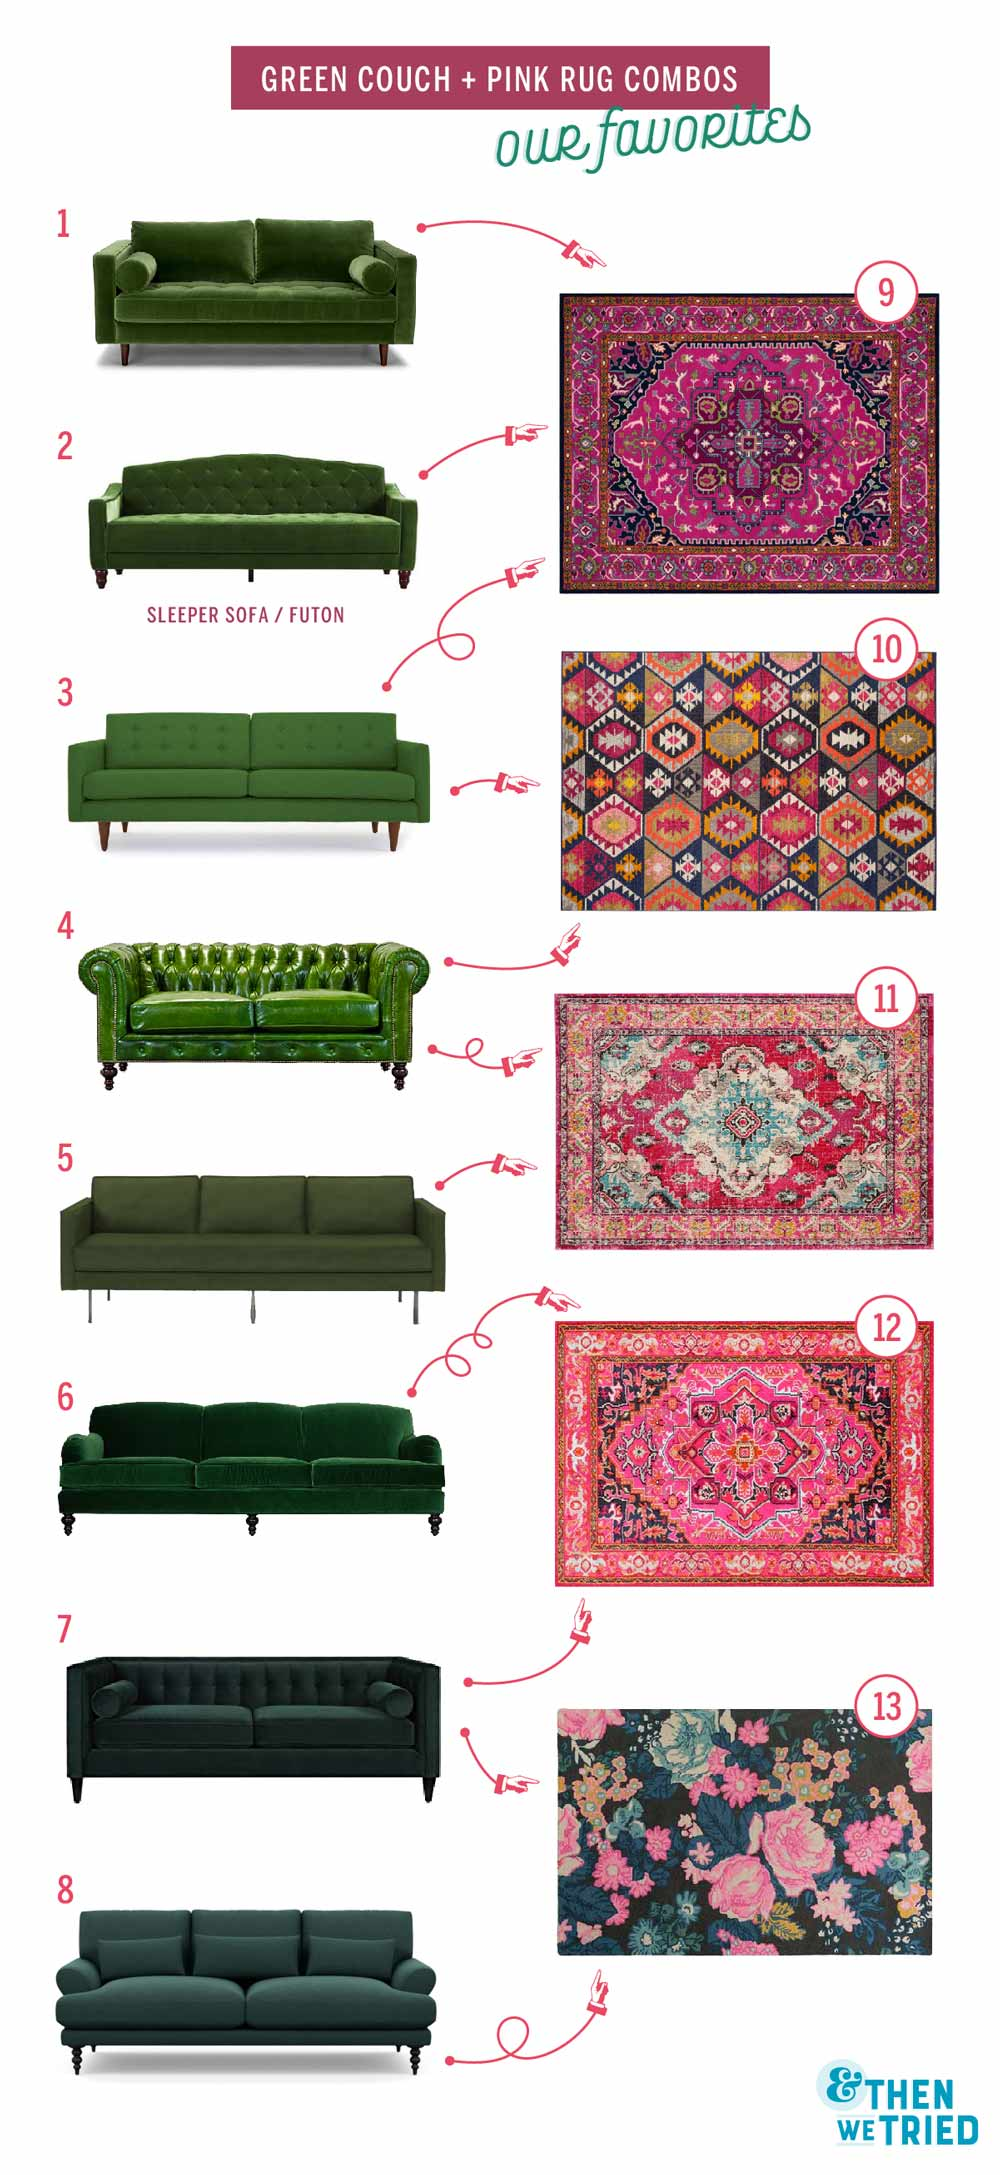 Perfect green couch and pink rug pairings